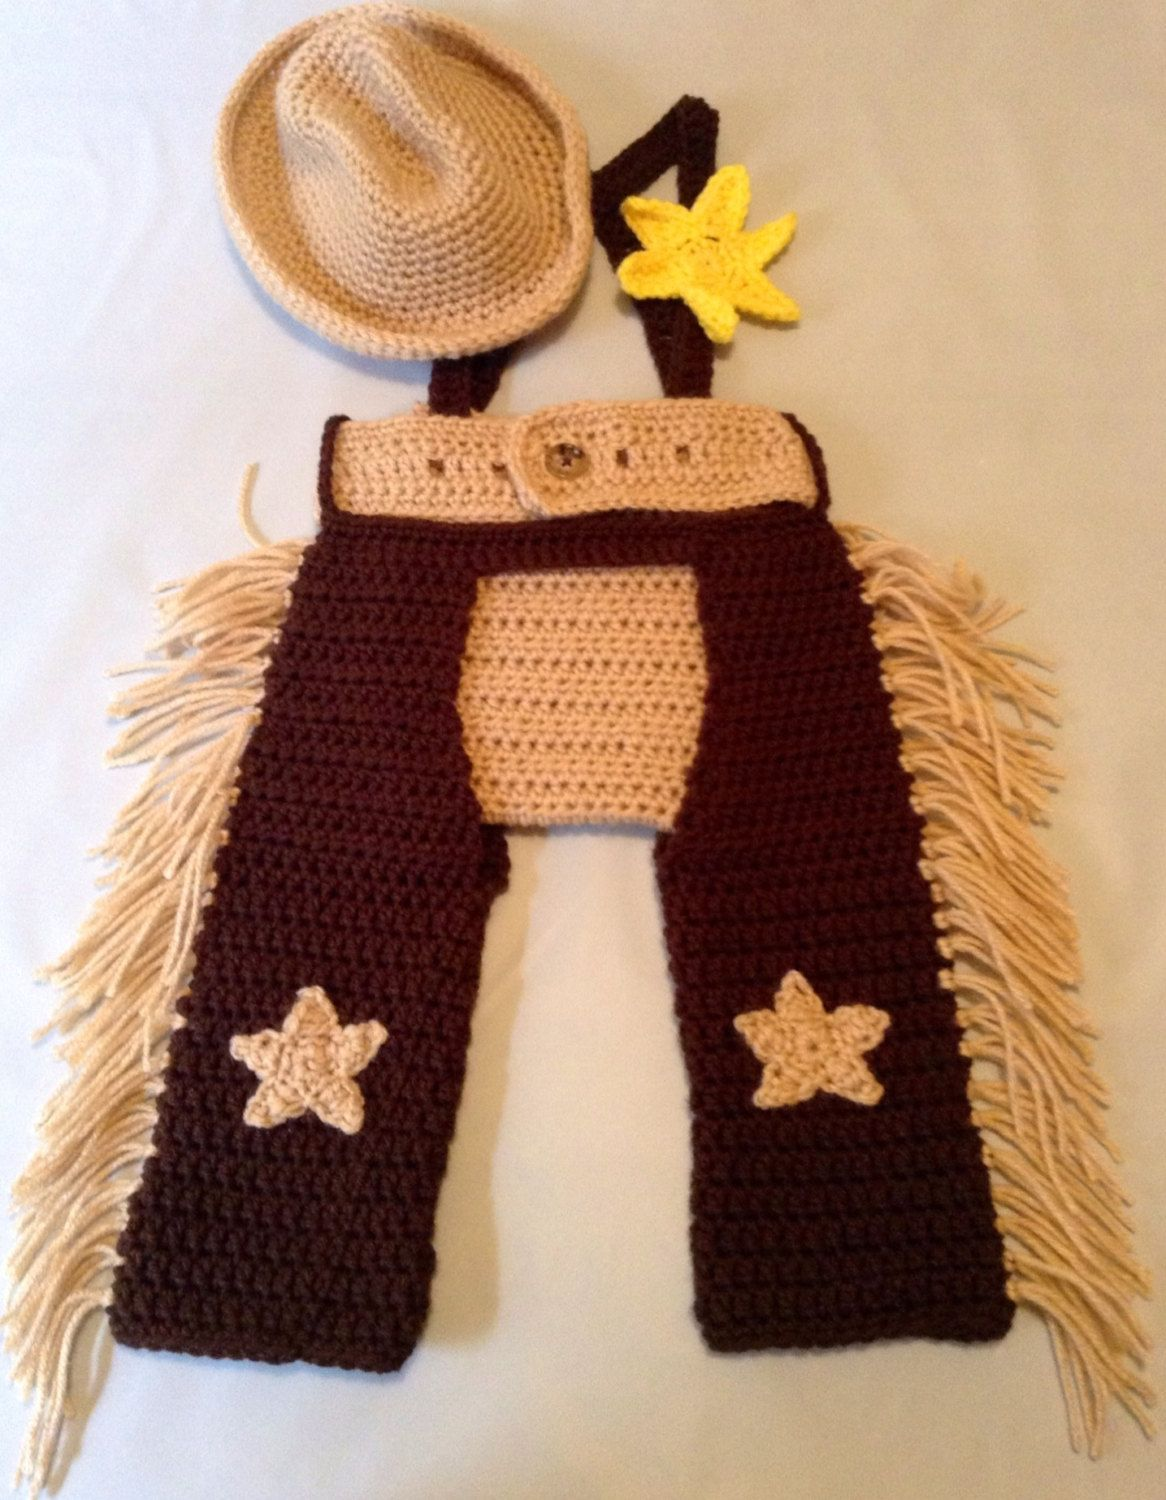 Crochet Baby Boy Cowboy Set With Cowboy Hat Chaps And Diaper Cover